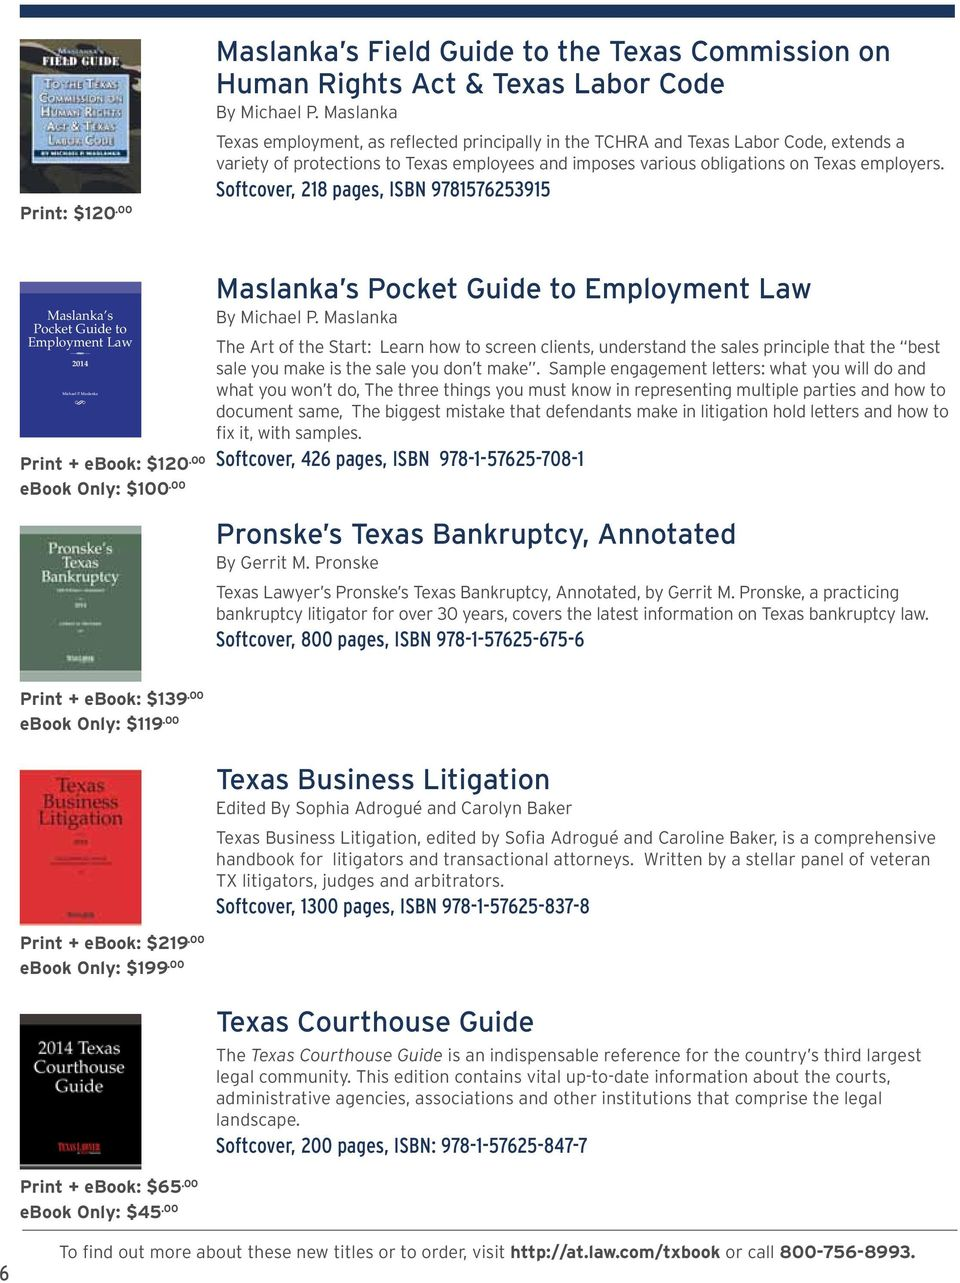 to Texas employees and imposes various obligations on Texas employers. Softcover, 218 pages, ISBN 9781576253915 ThOR nka is entering his 32 nd year of ates and tries employment law s.